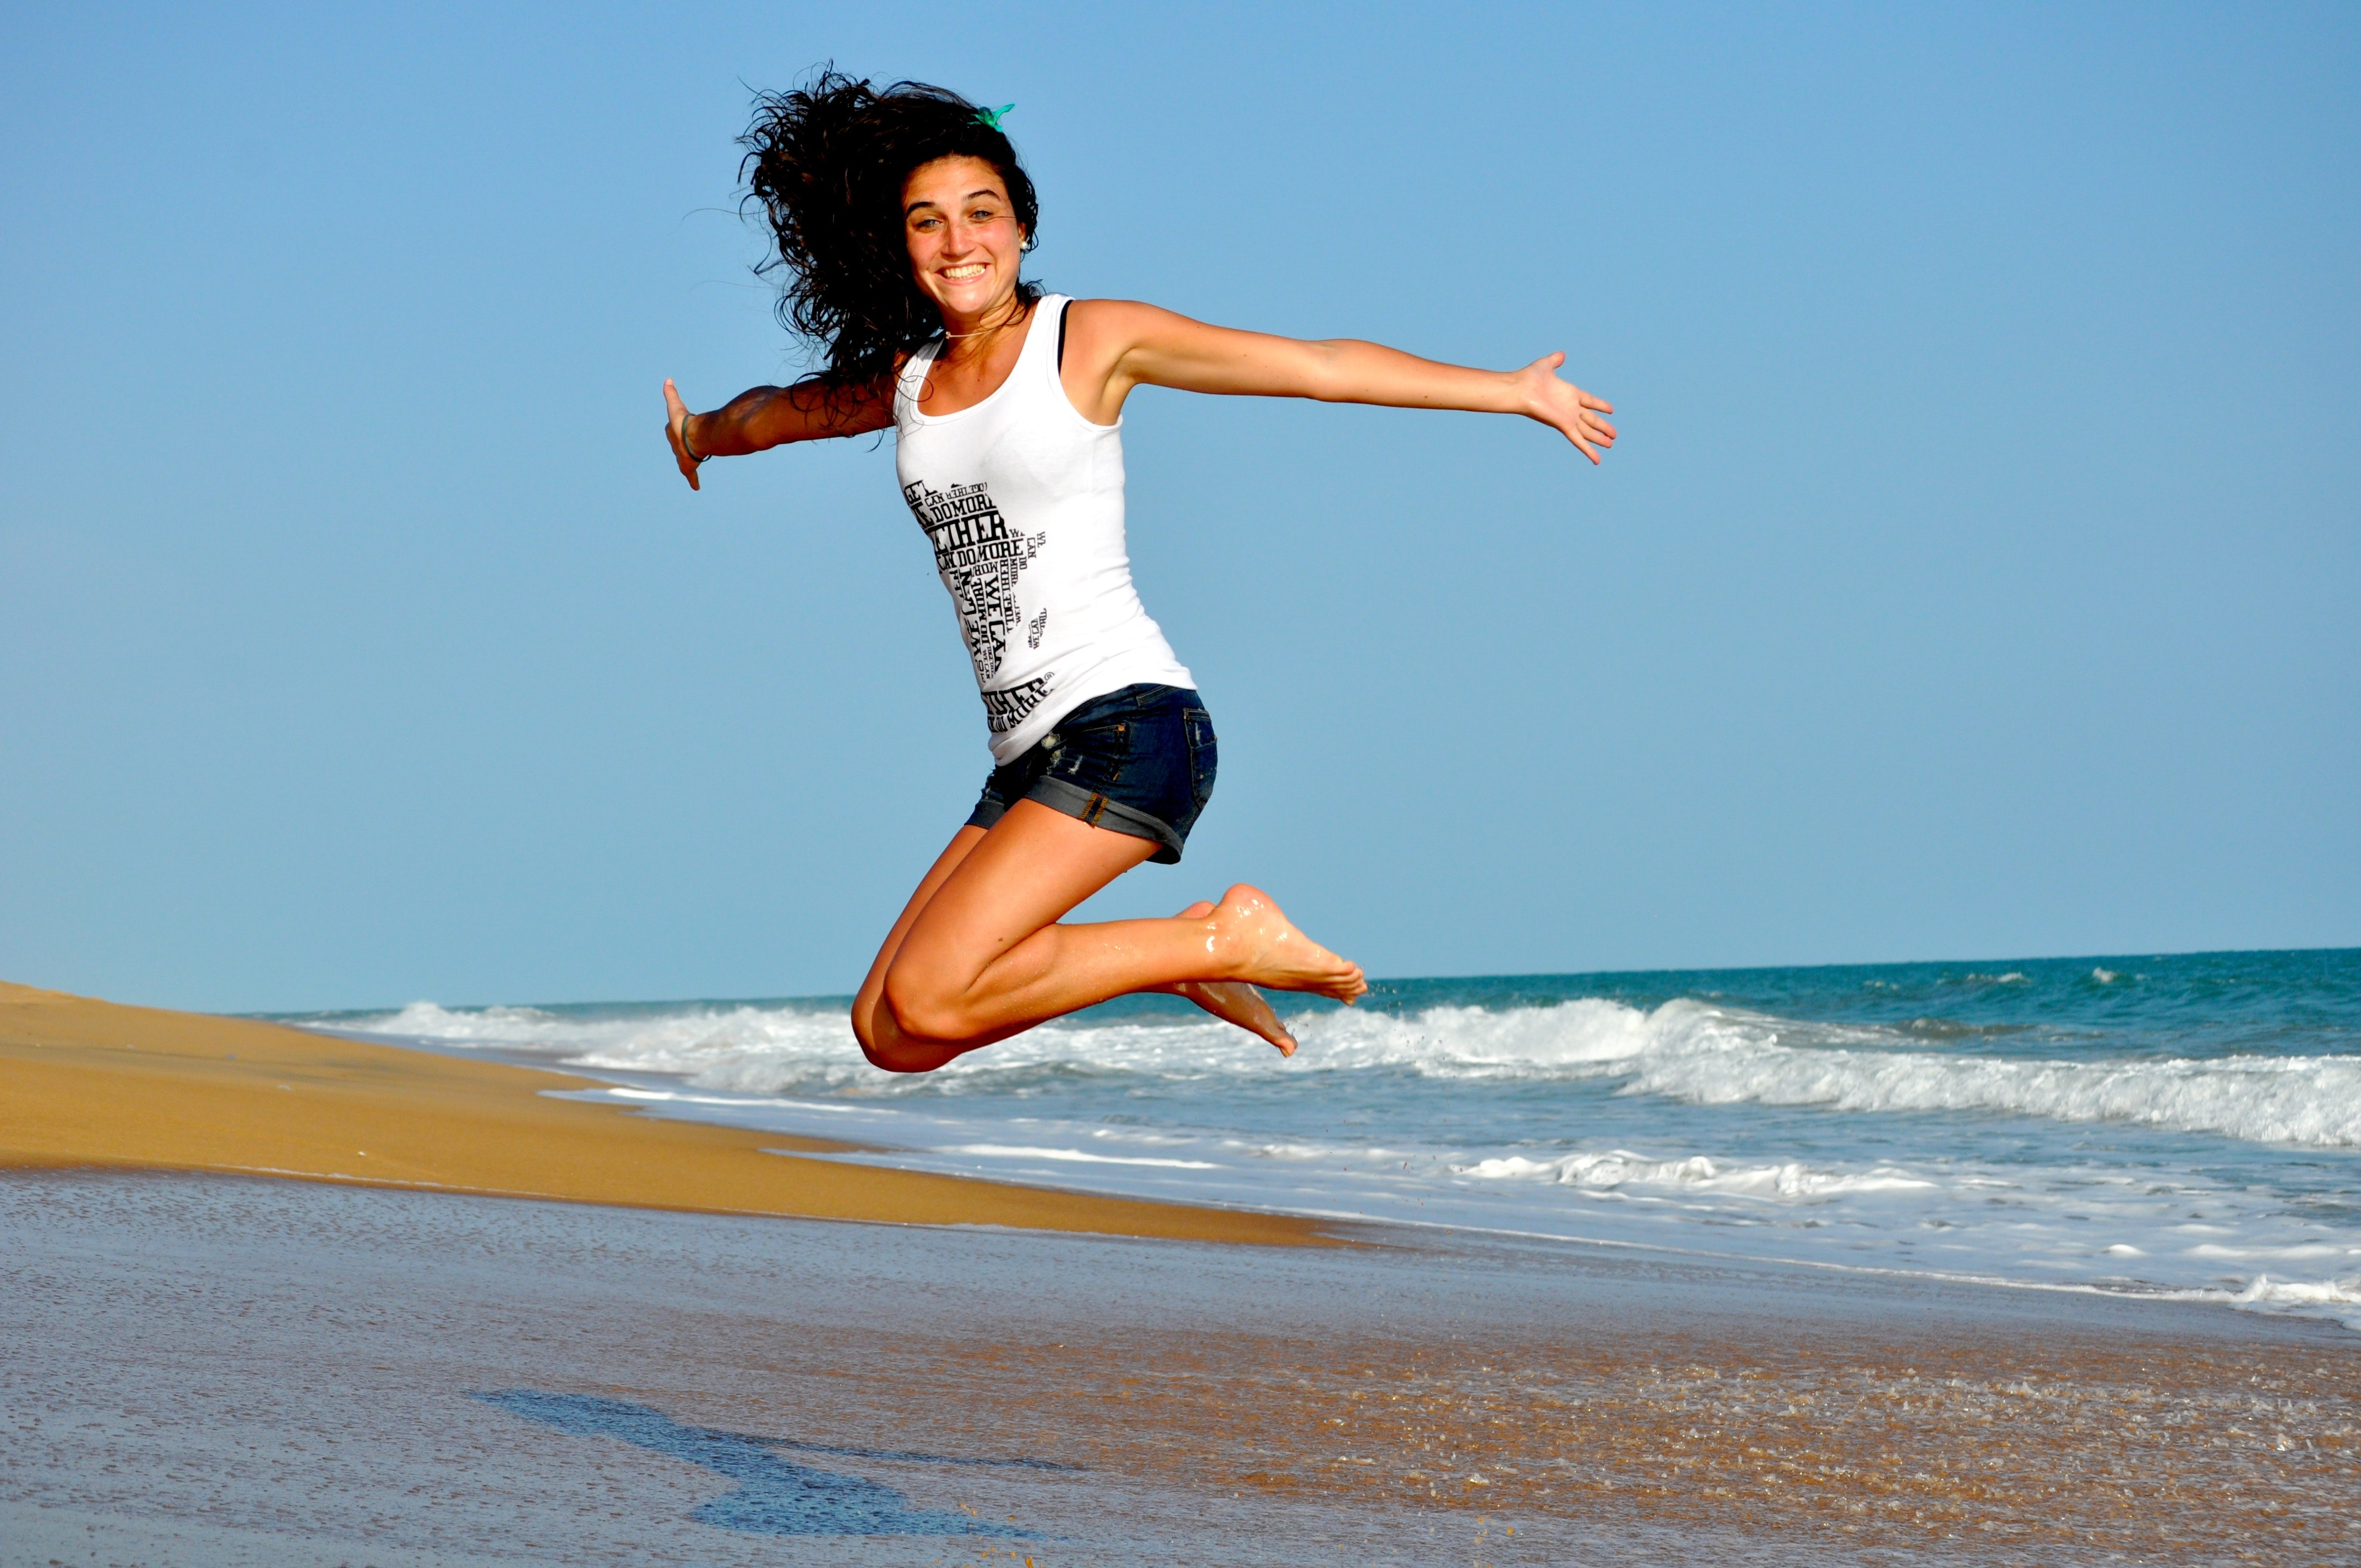 Woman in White Tanktop Jump over Beach Sand, Beach, Beautiful, Content, Happy, HQ Photo